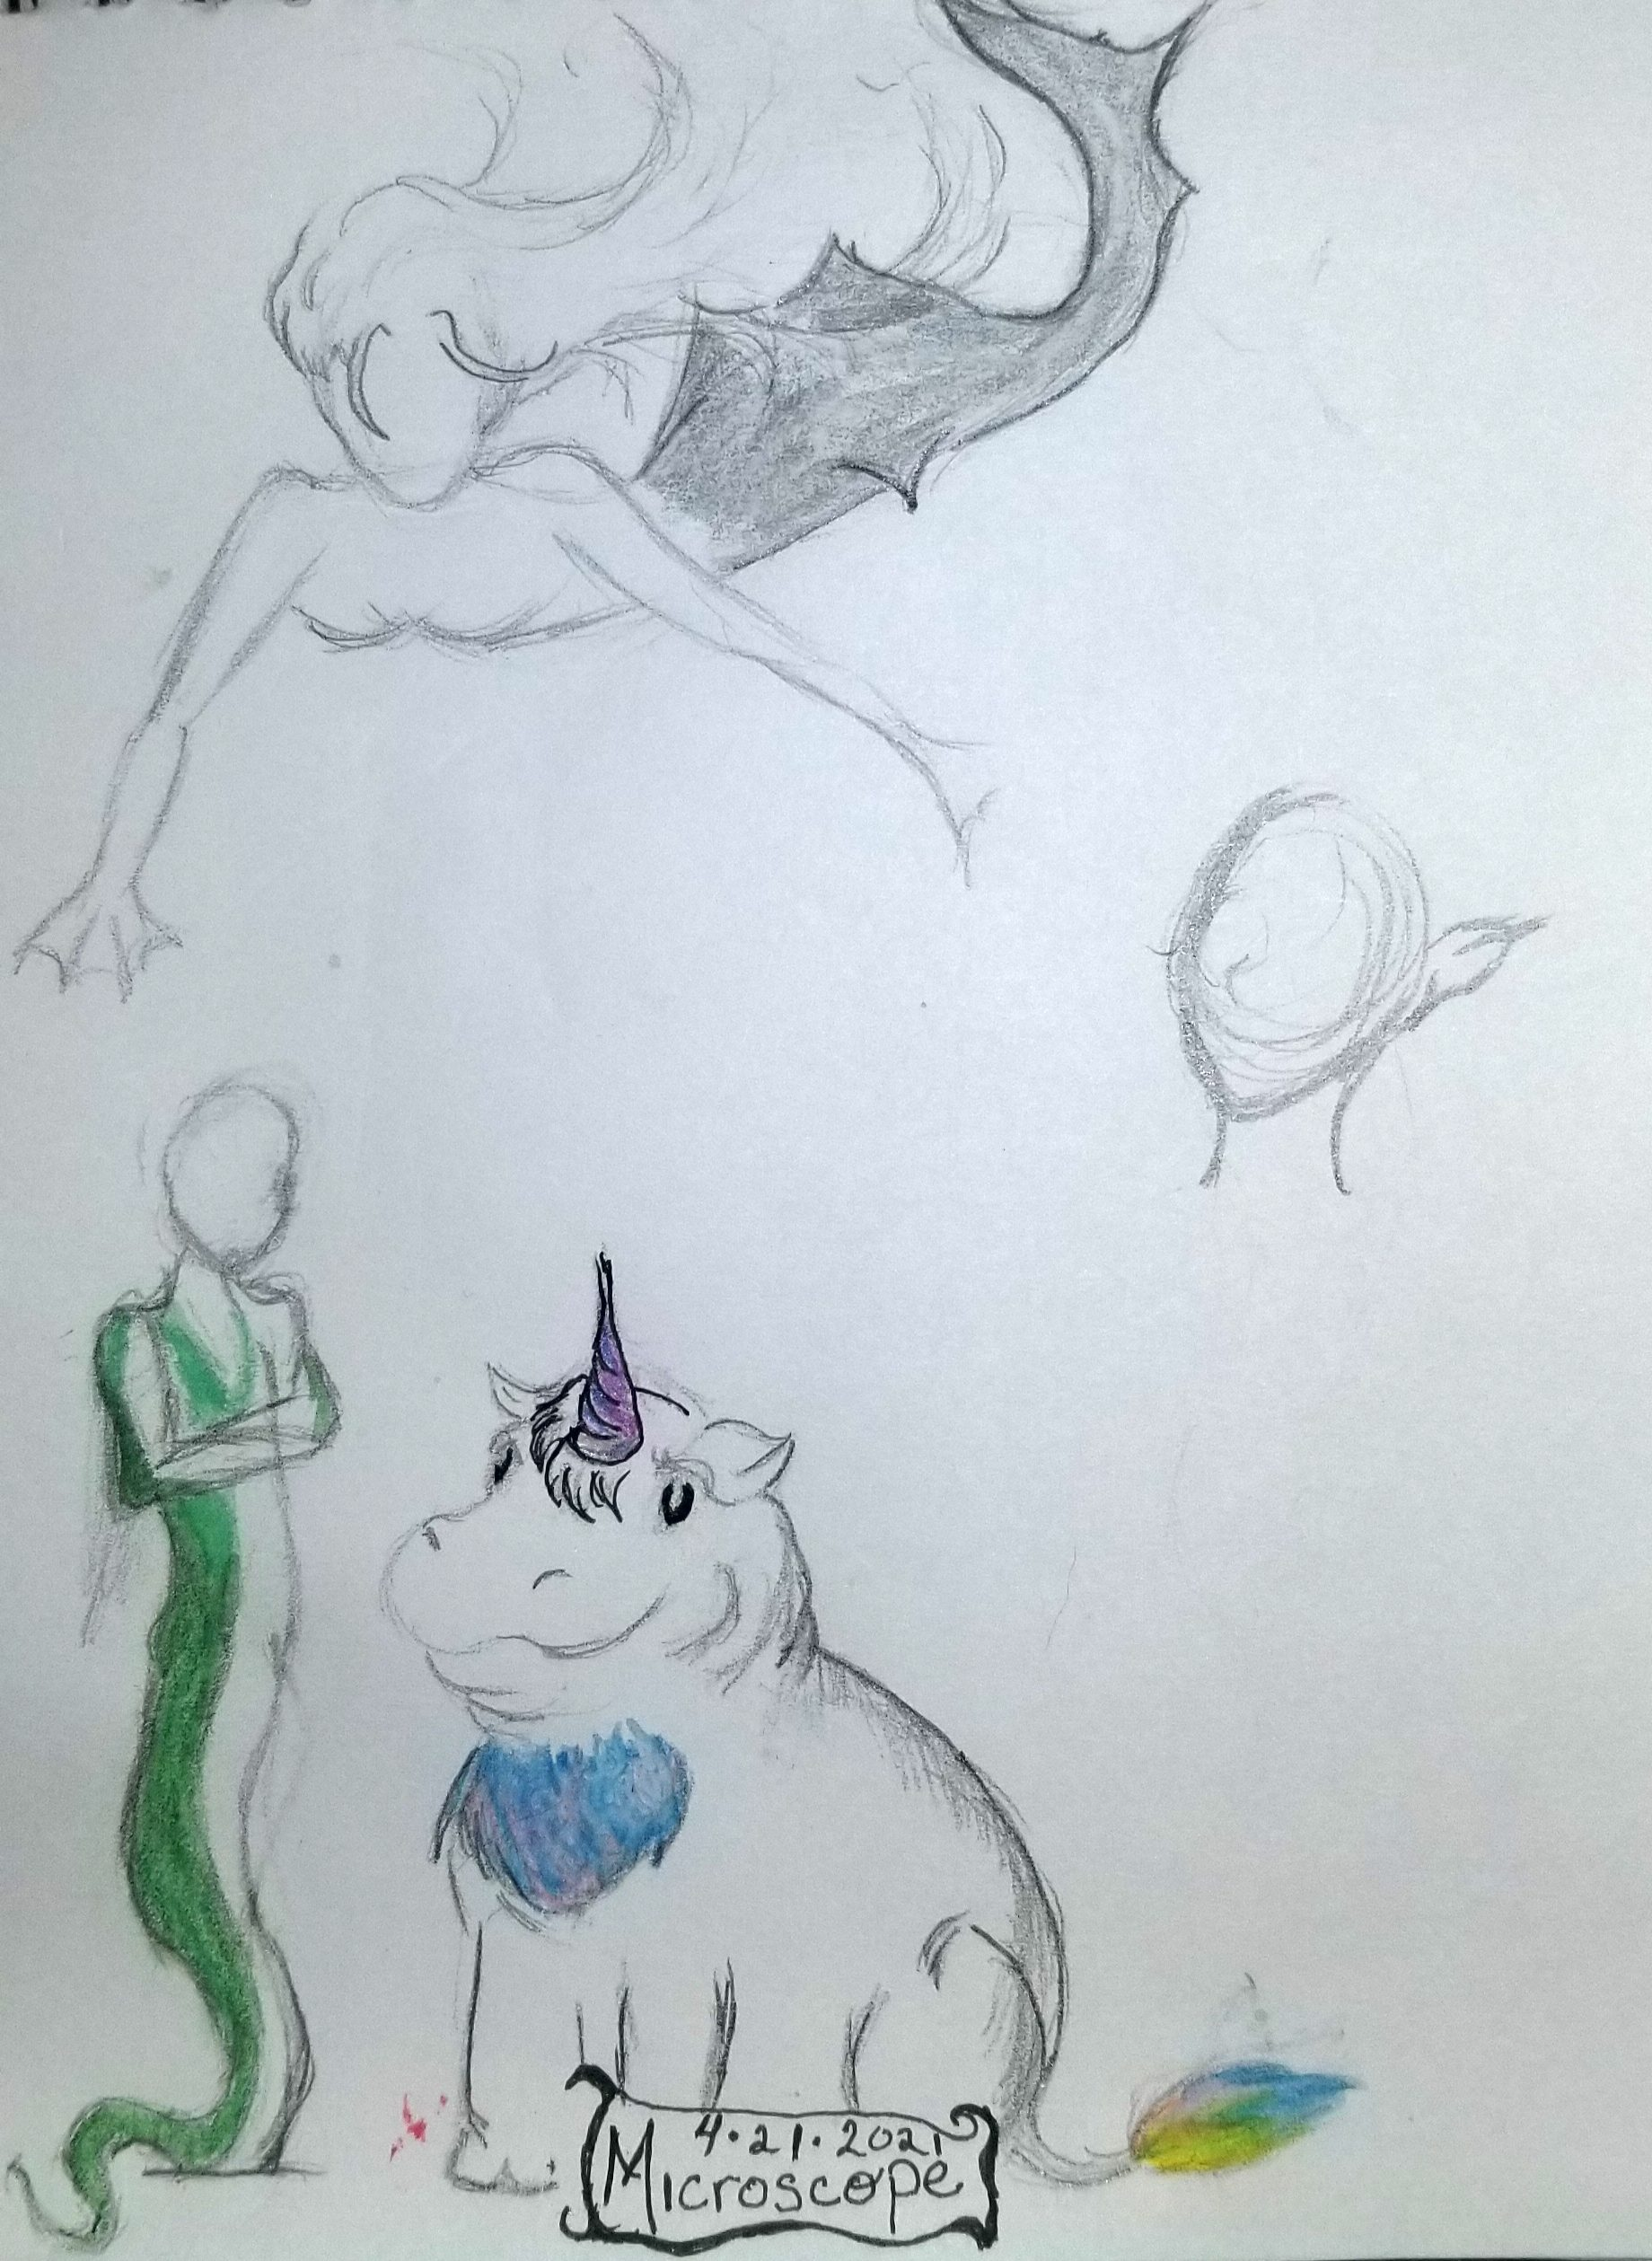 Hand drawing of a snake person, a hippocorn, and an air mermaid flying above them.